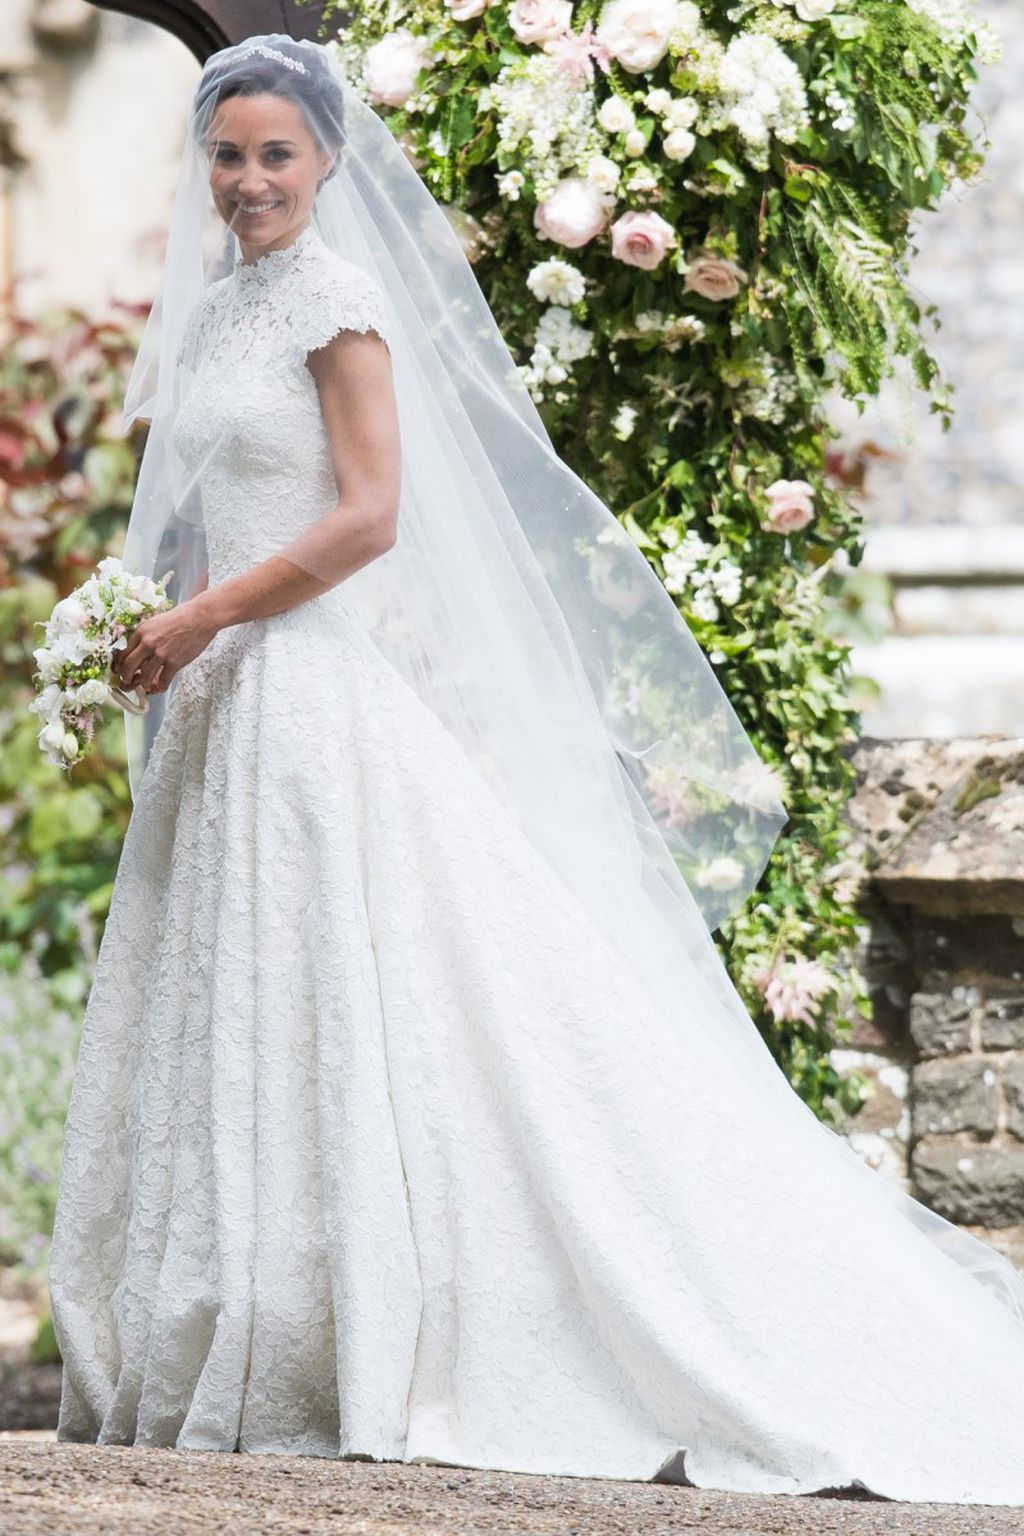 The best wedding dresses of 2017 9style pfrom actresses to almost royalty theres been a flurry of high junglespirit Gallery